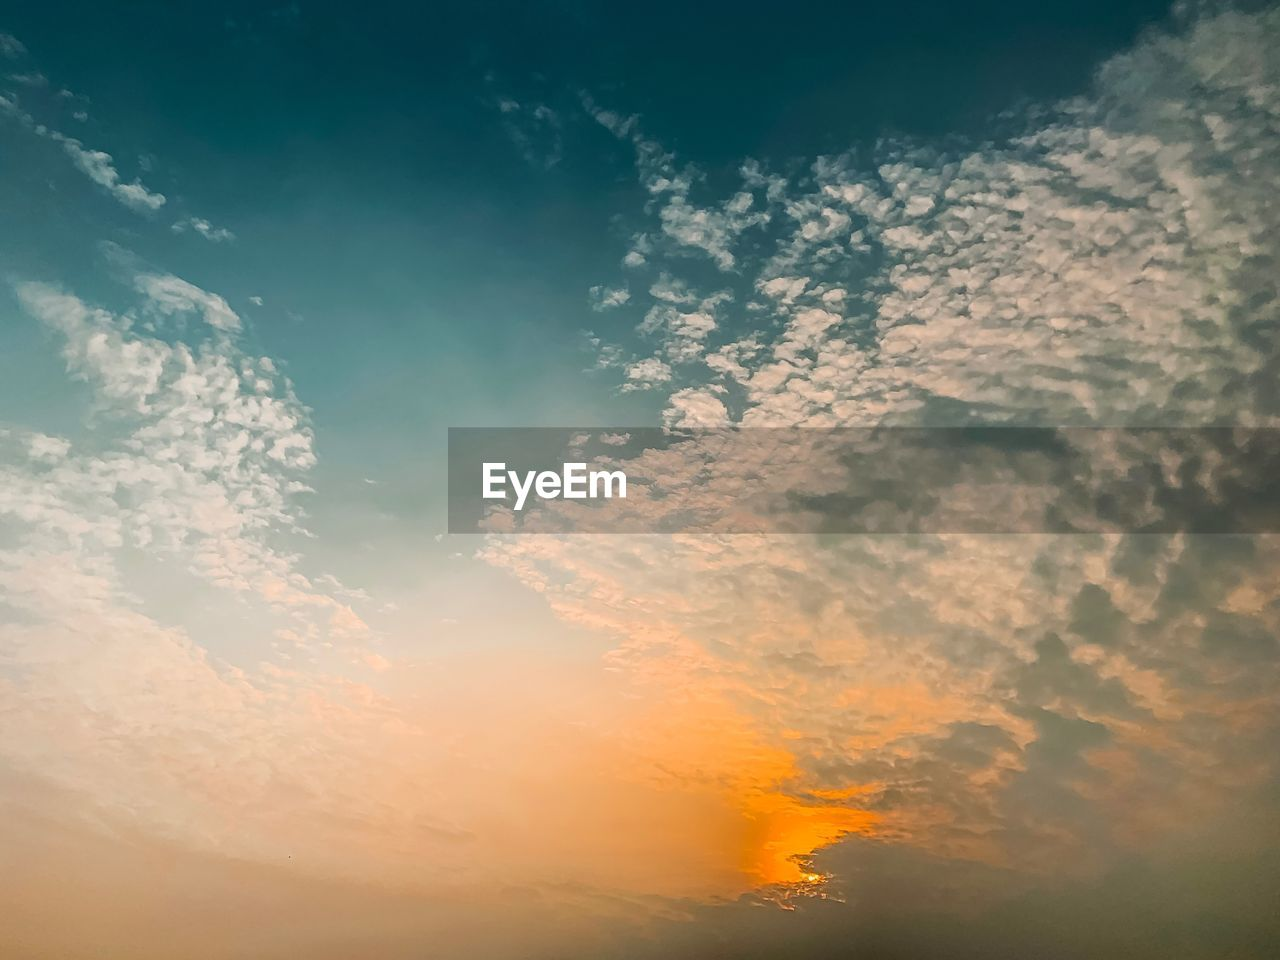 cloud - sky, sky, beauty in nature, sunset, scenics - nature, tranquility, tranquil scene, low angle view, orange color, no people, idyllic, nature, outdoors, full frame, backgrounds, dramatic sky, non-urban scene, sunlight, cloudscape, day, meteorology